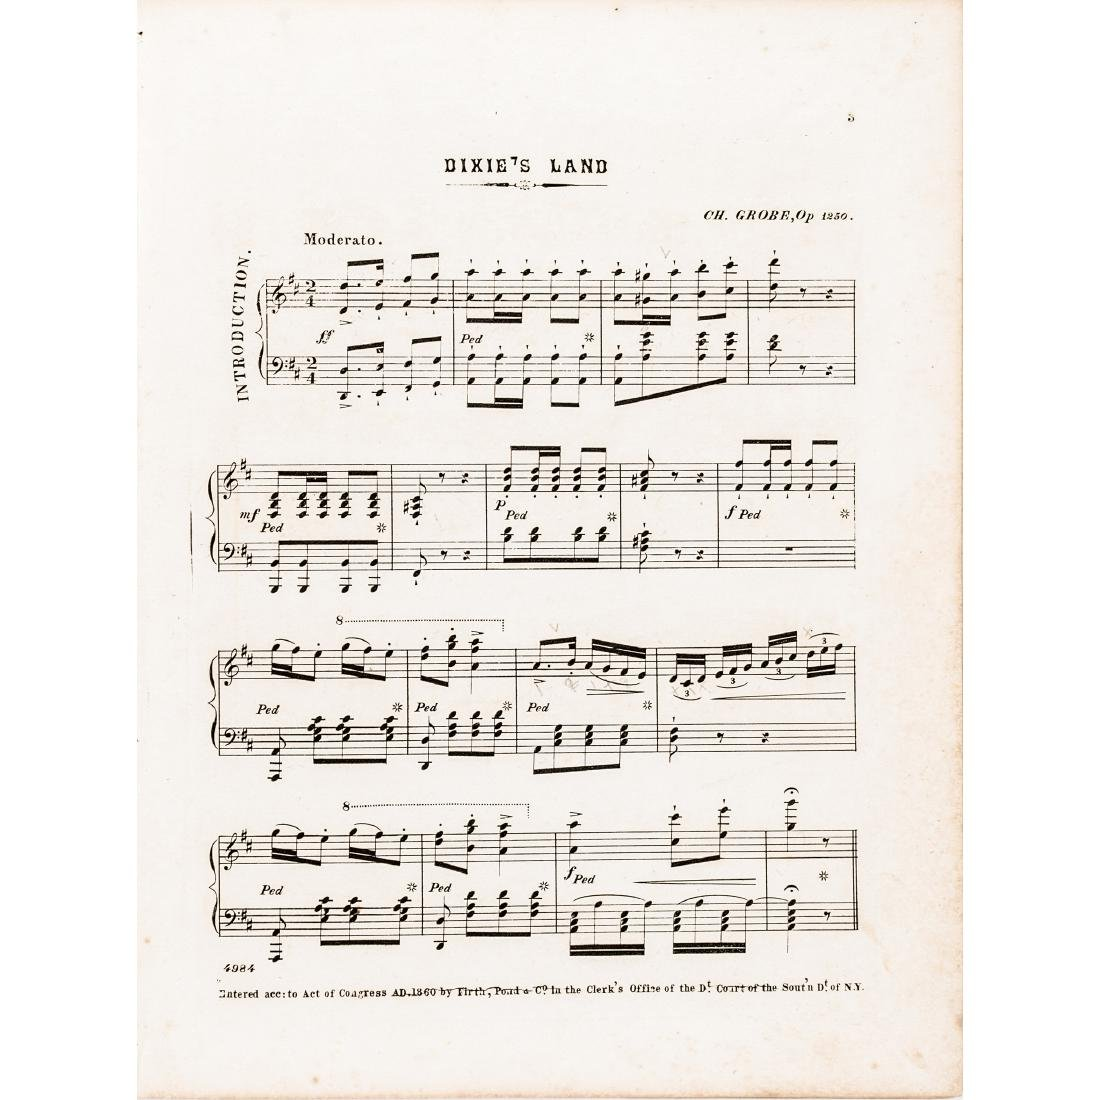 1860 Sheet Music DIXIE'S LAND with Variations - 2